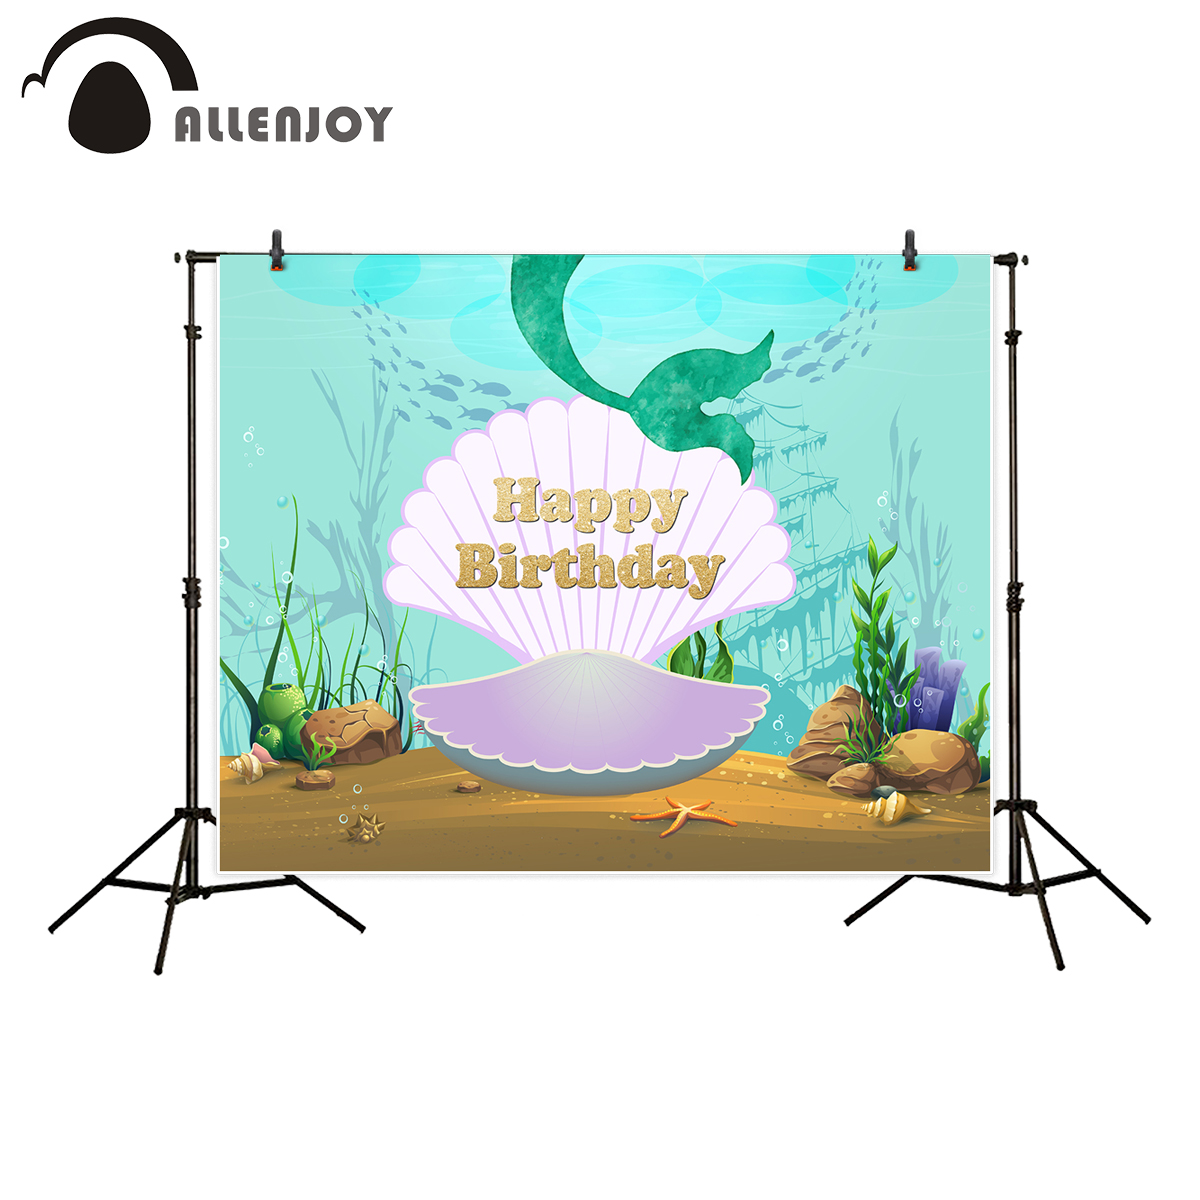 Allenjoy photography backdrops birthday cartoon seabed theme party background photo studio photocall decor photobooth new